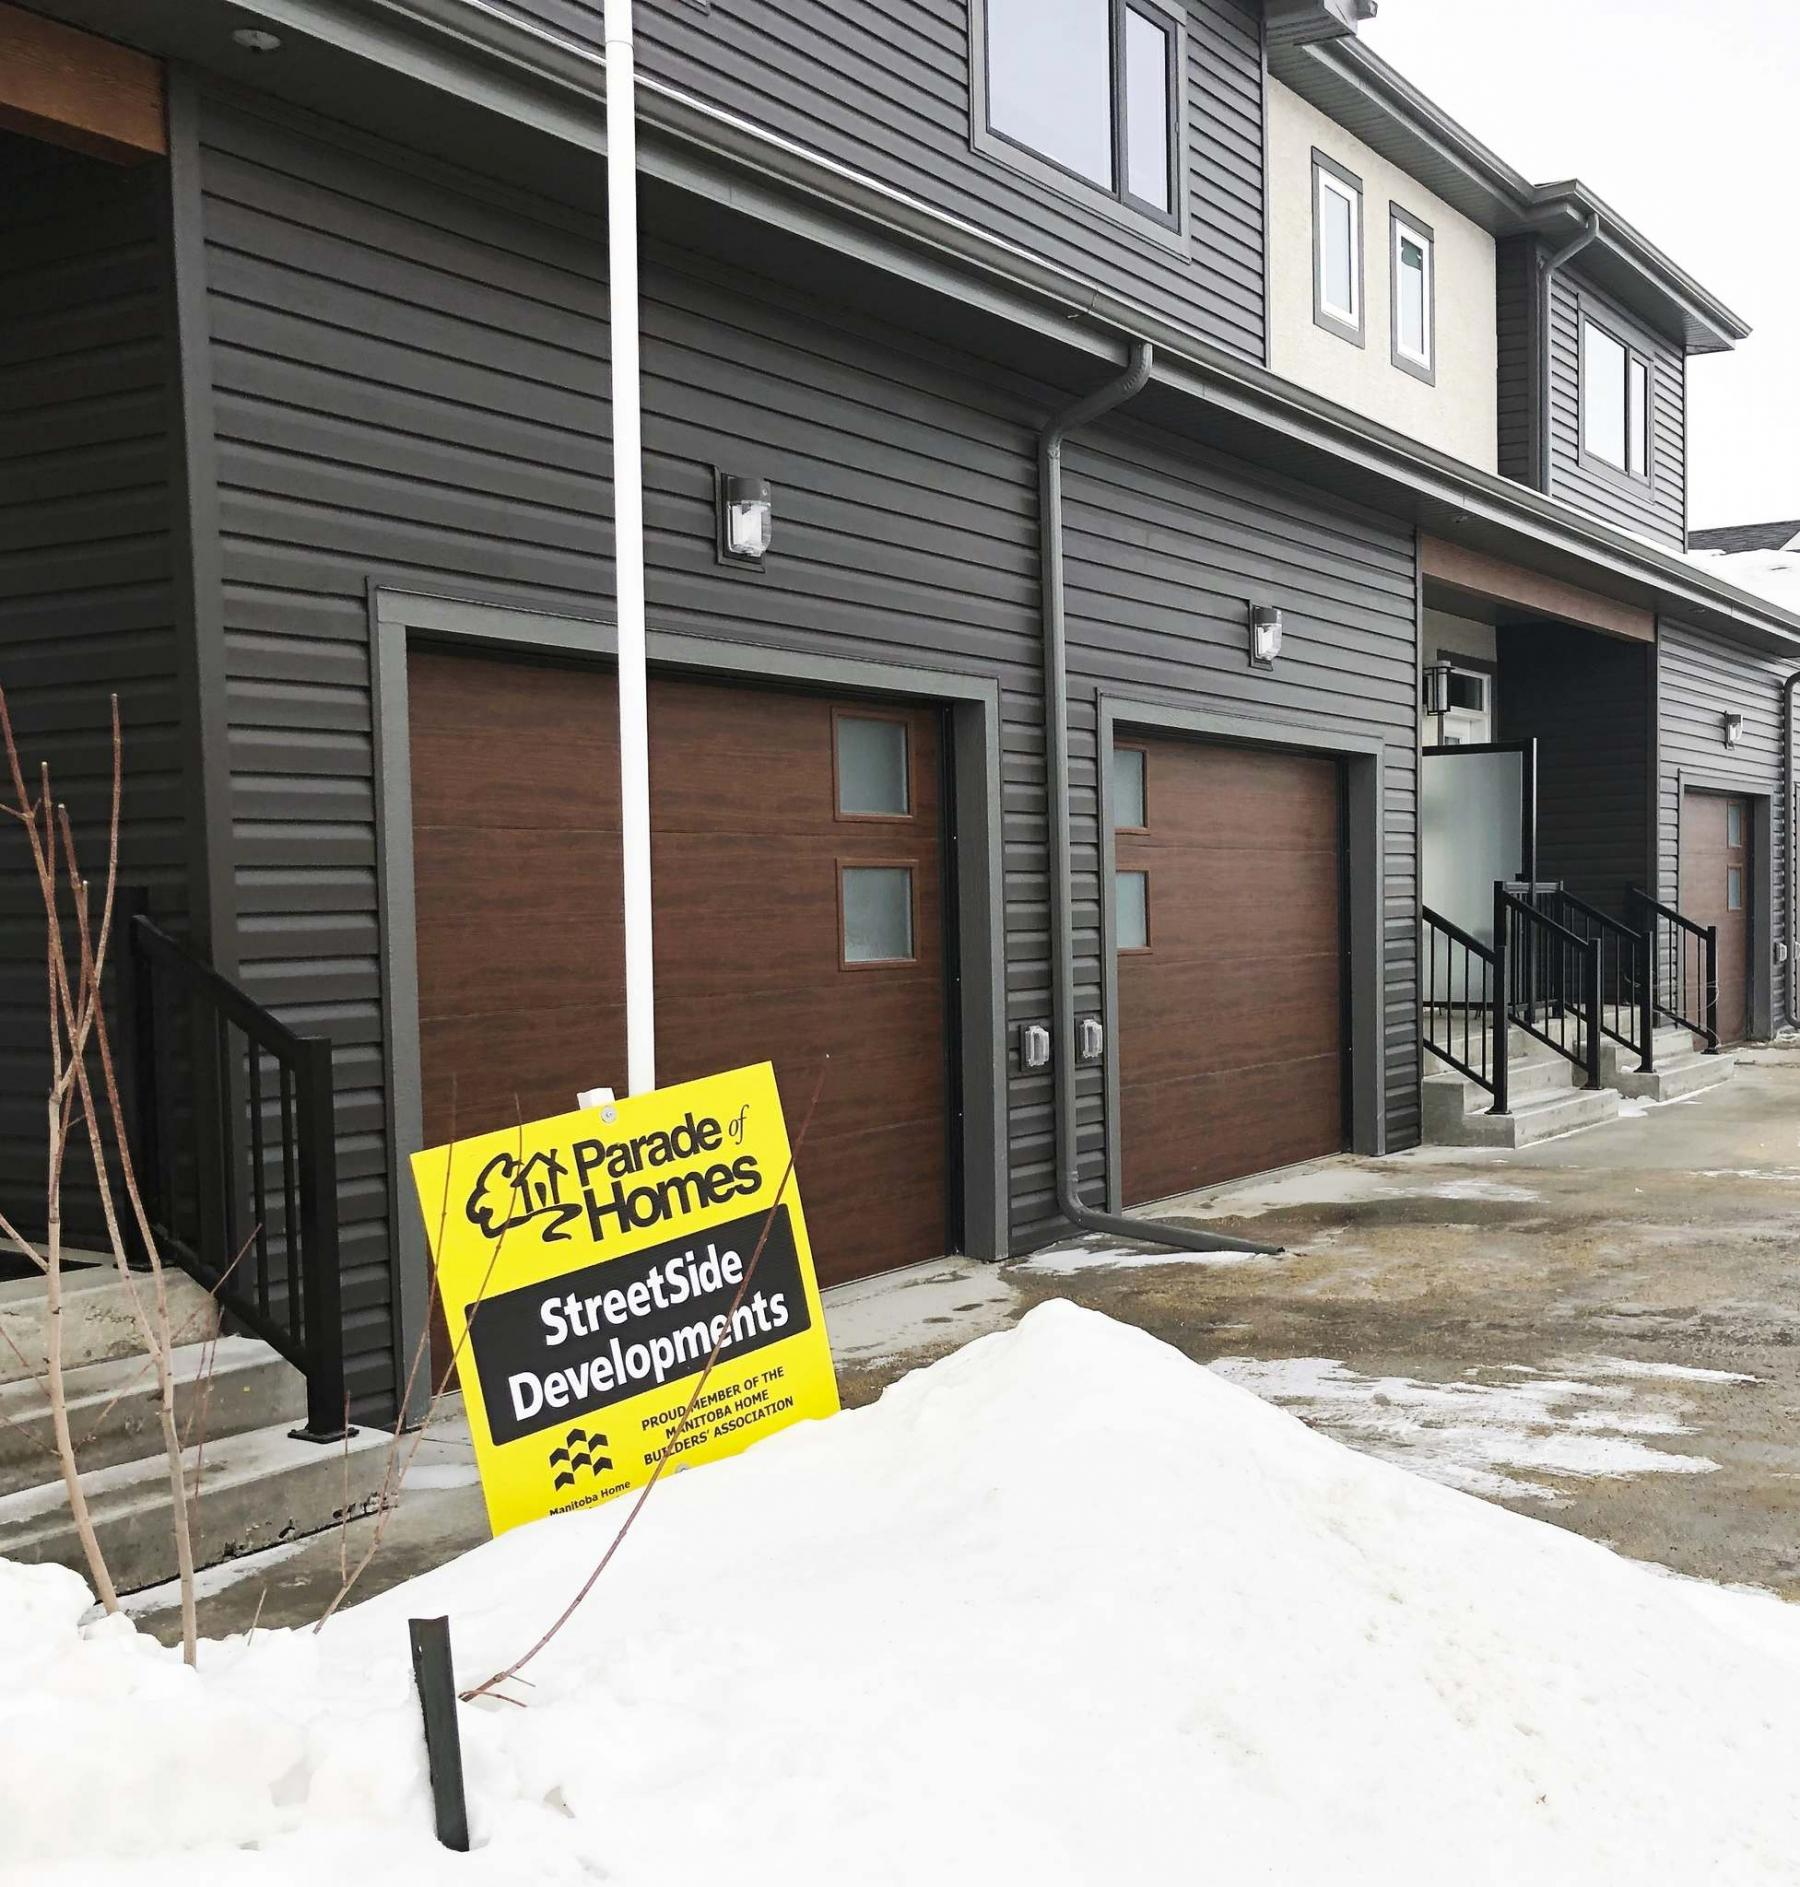 <p>Willy Williamson / Winnipeg Free Press</p><p>The Manitoba Home Builders' Association's annual Spring Parade of Homes is on now. </p>